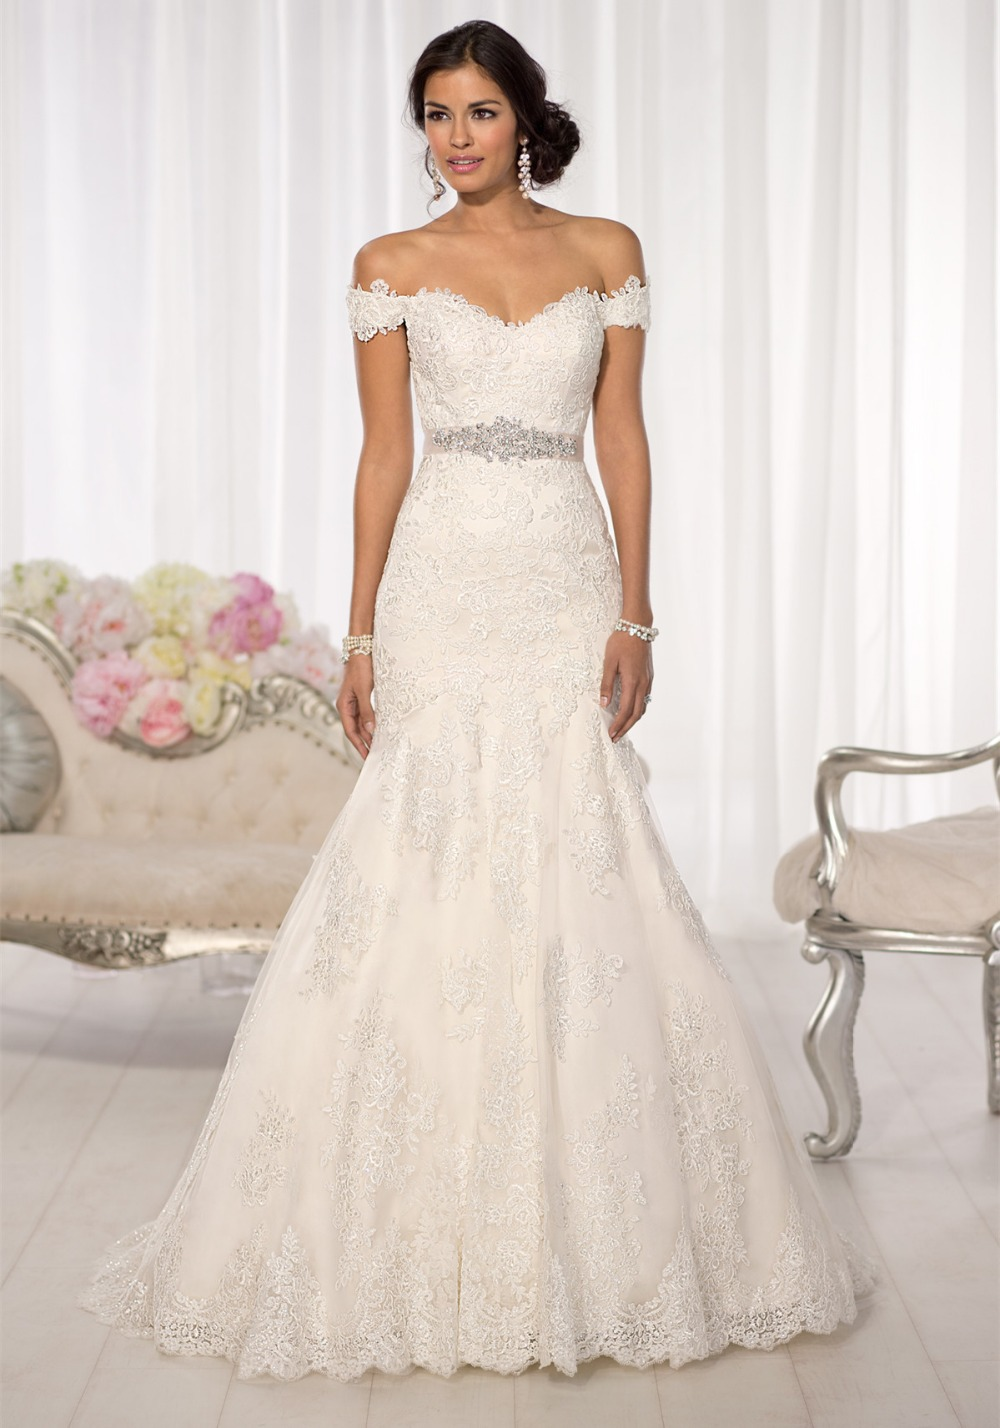 aliexpresscom buy free shipping elegant applique lace wedding gowns sleeves trumpet wedding dress sweetheart neckline bride dress 2017 pa2 from reliable